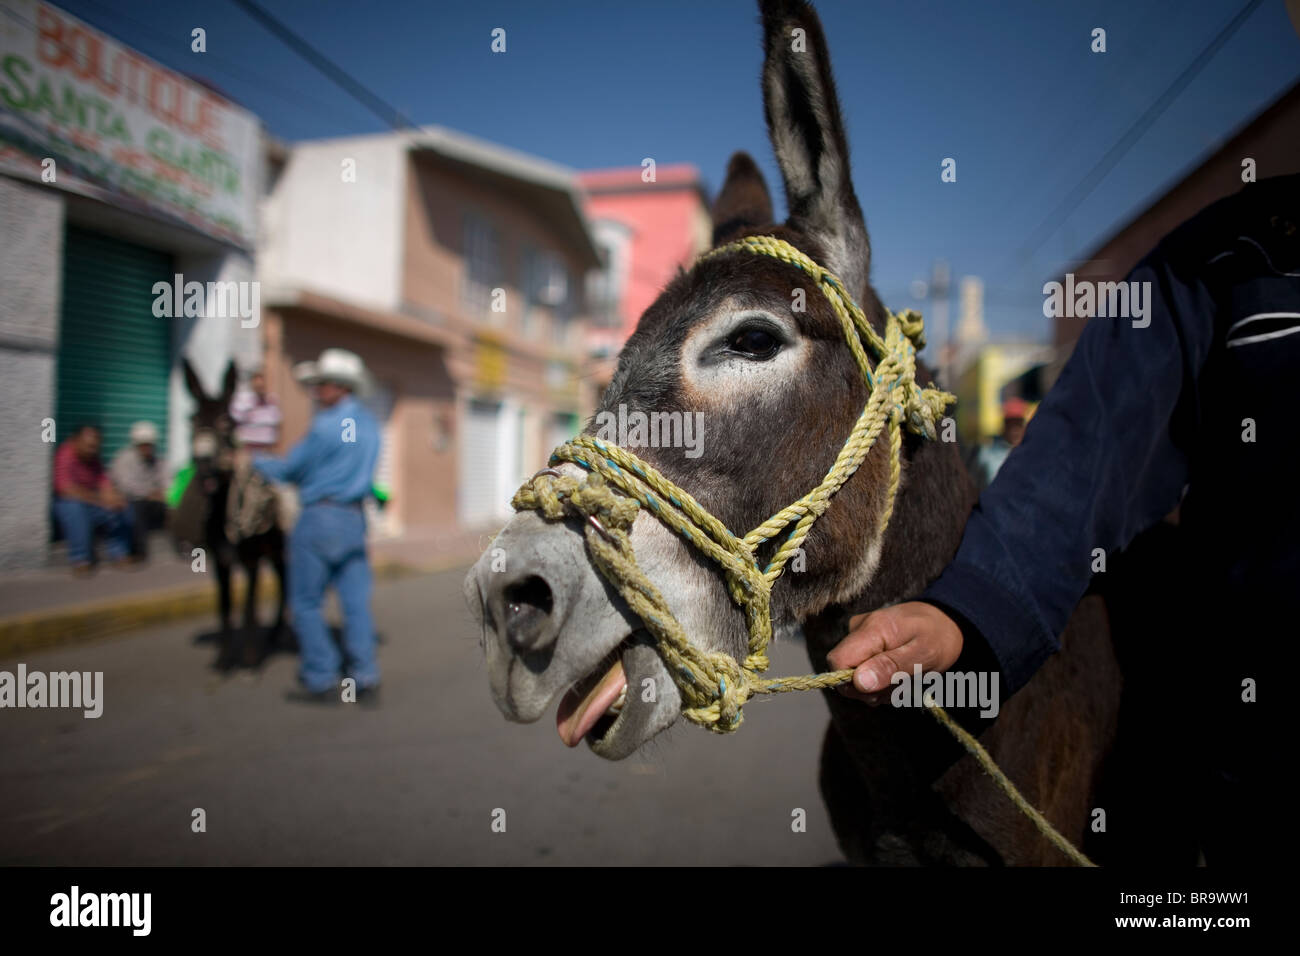 Participants wait with their donkeys at the 48th Annual Donkey Festival in Otumba Village Mexico - Stock Image